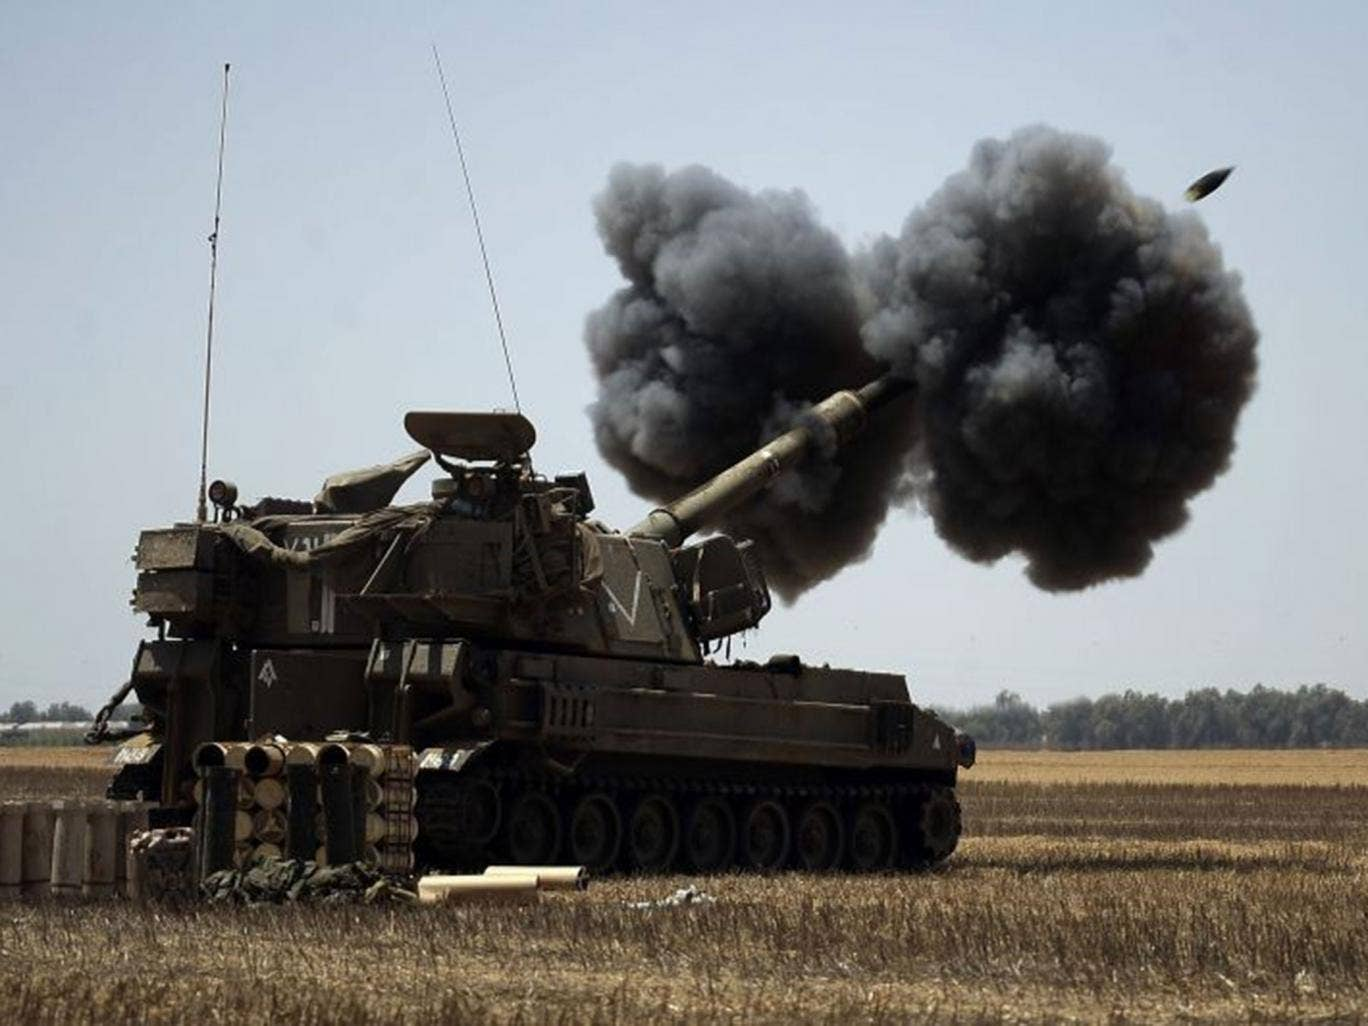 An Israeli canon fires a shell towards targets in the Gaza Strip on 2 August